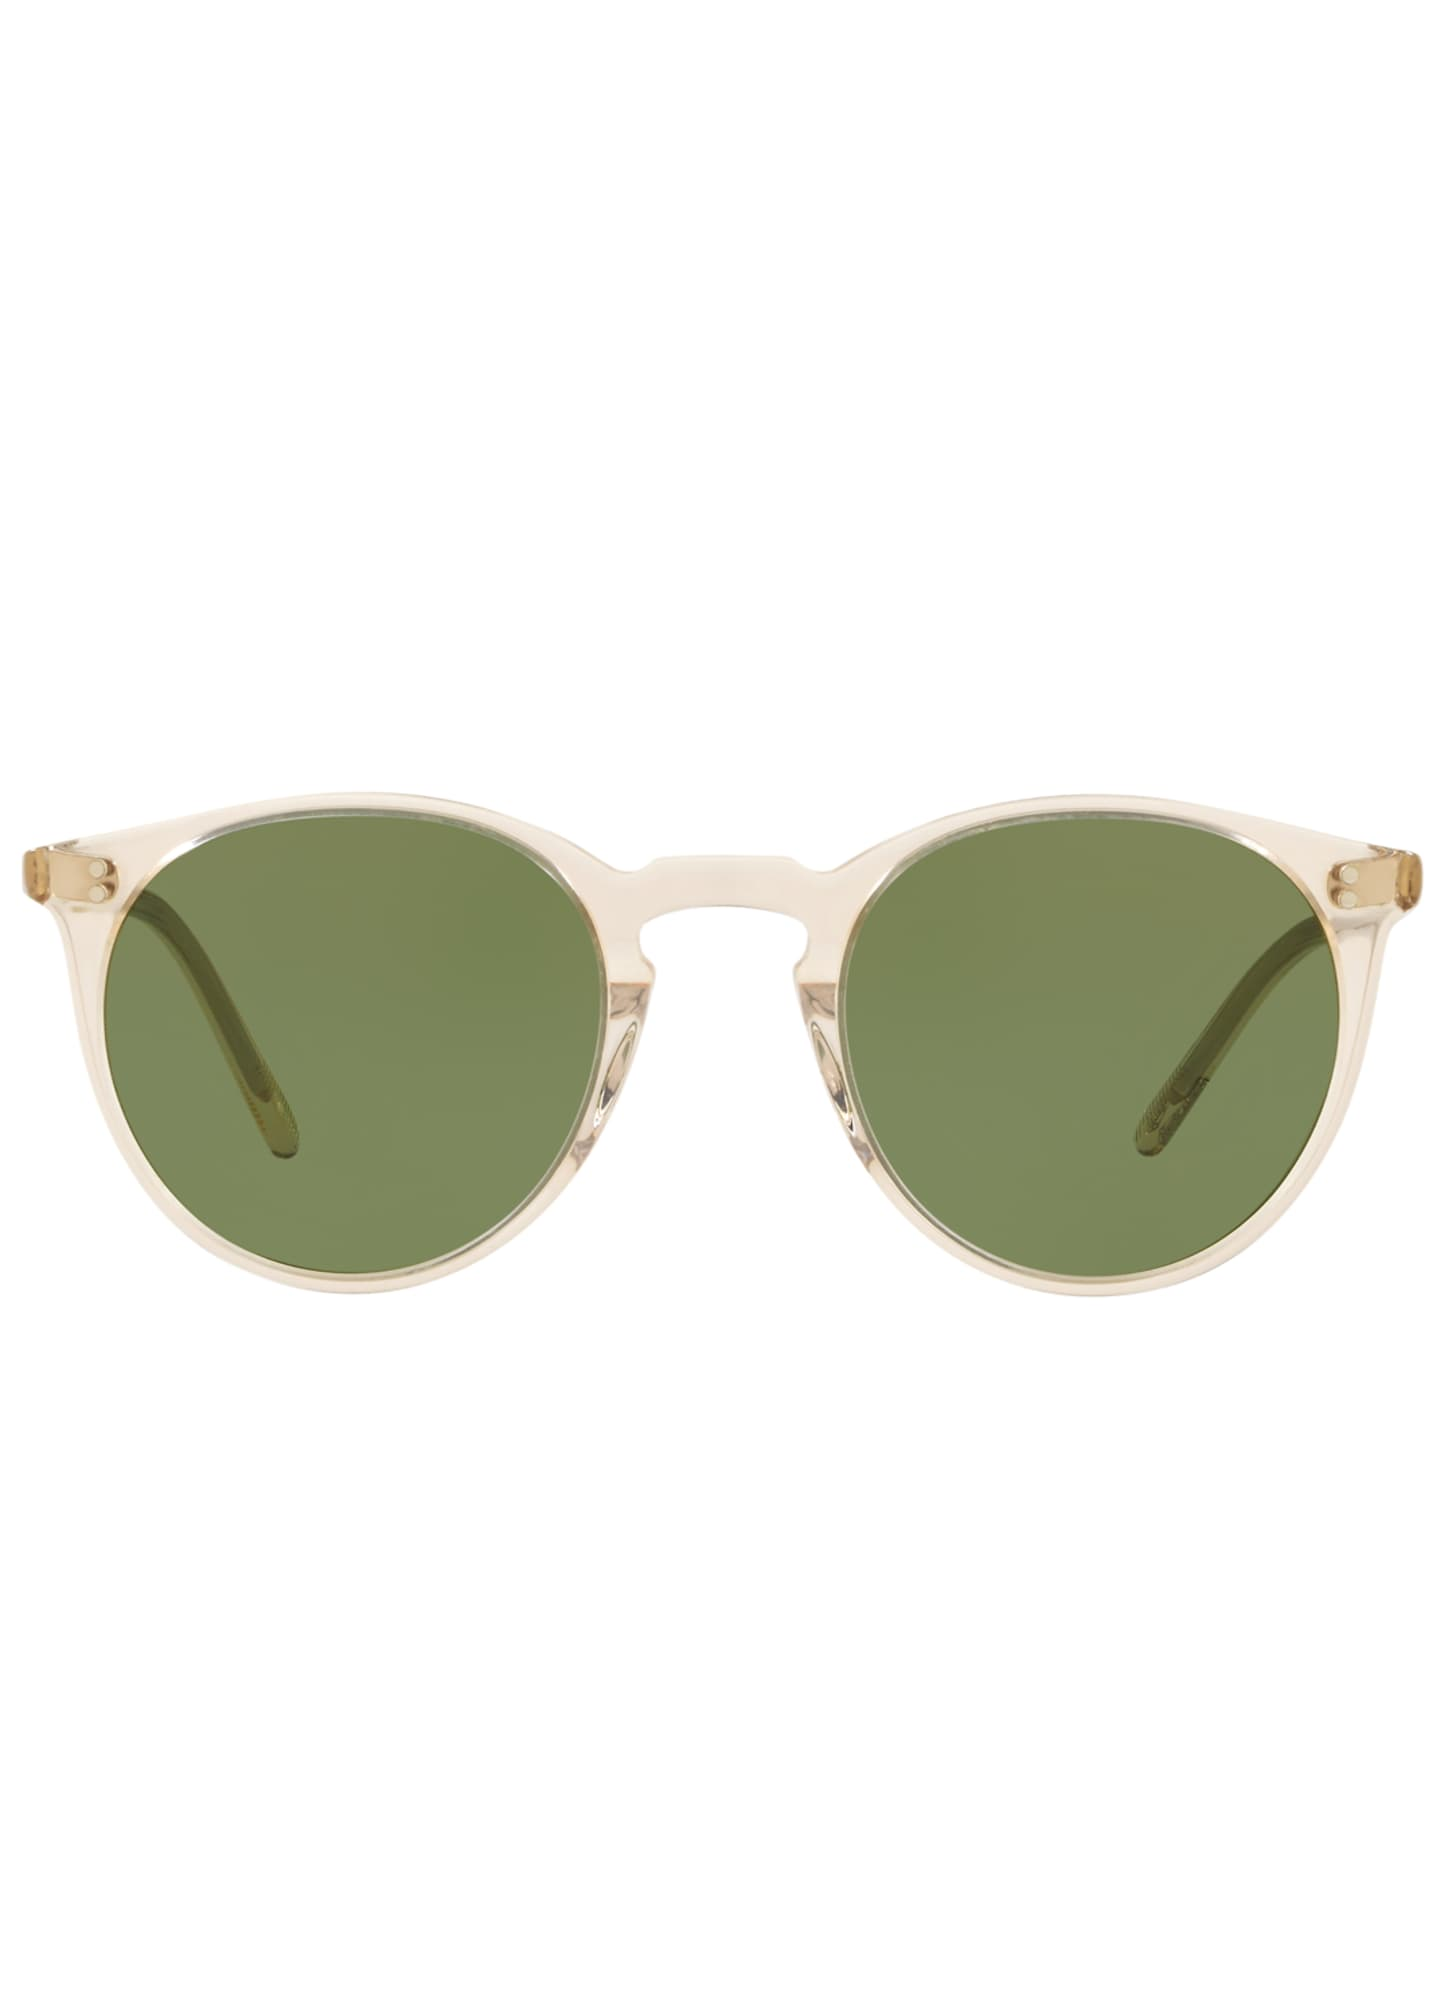 Image 2 of 2: Men's O'Malley Peaked Round Sunglasses with Mineral Glass Lenses - Buff Green